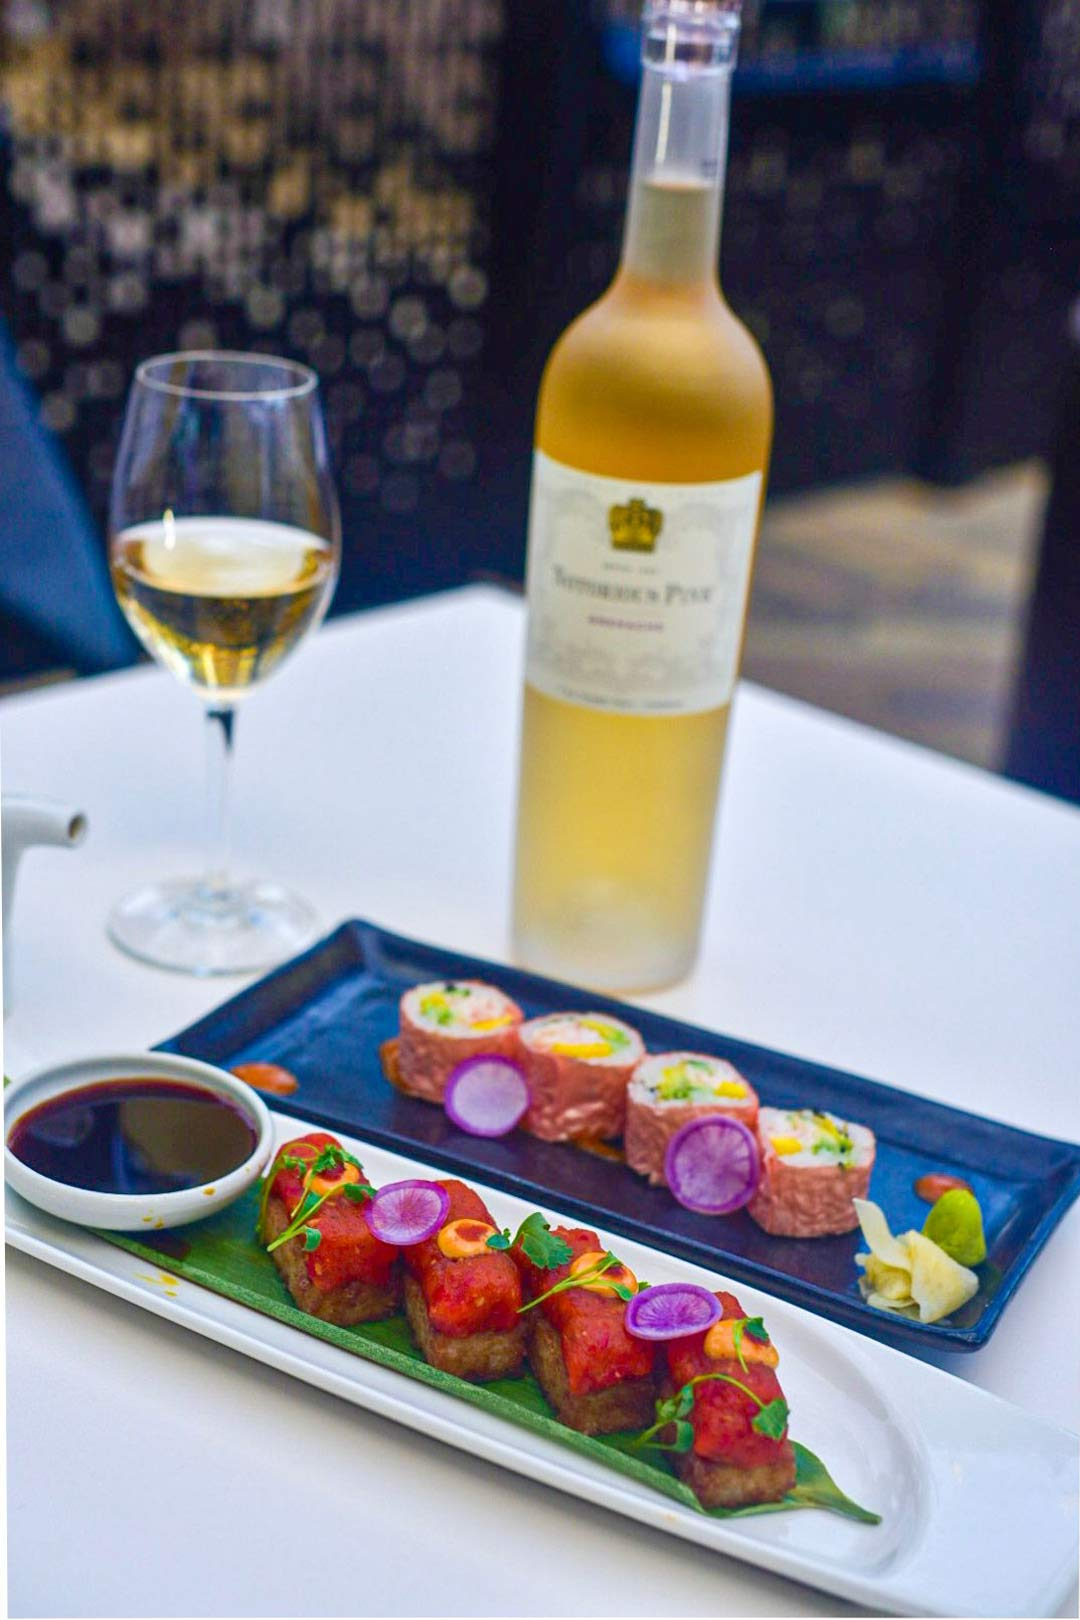 Tuesday's Wine Night at JING